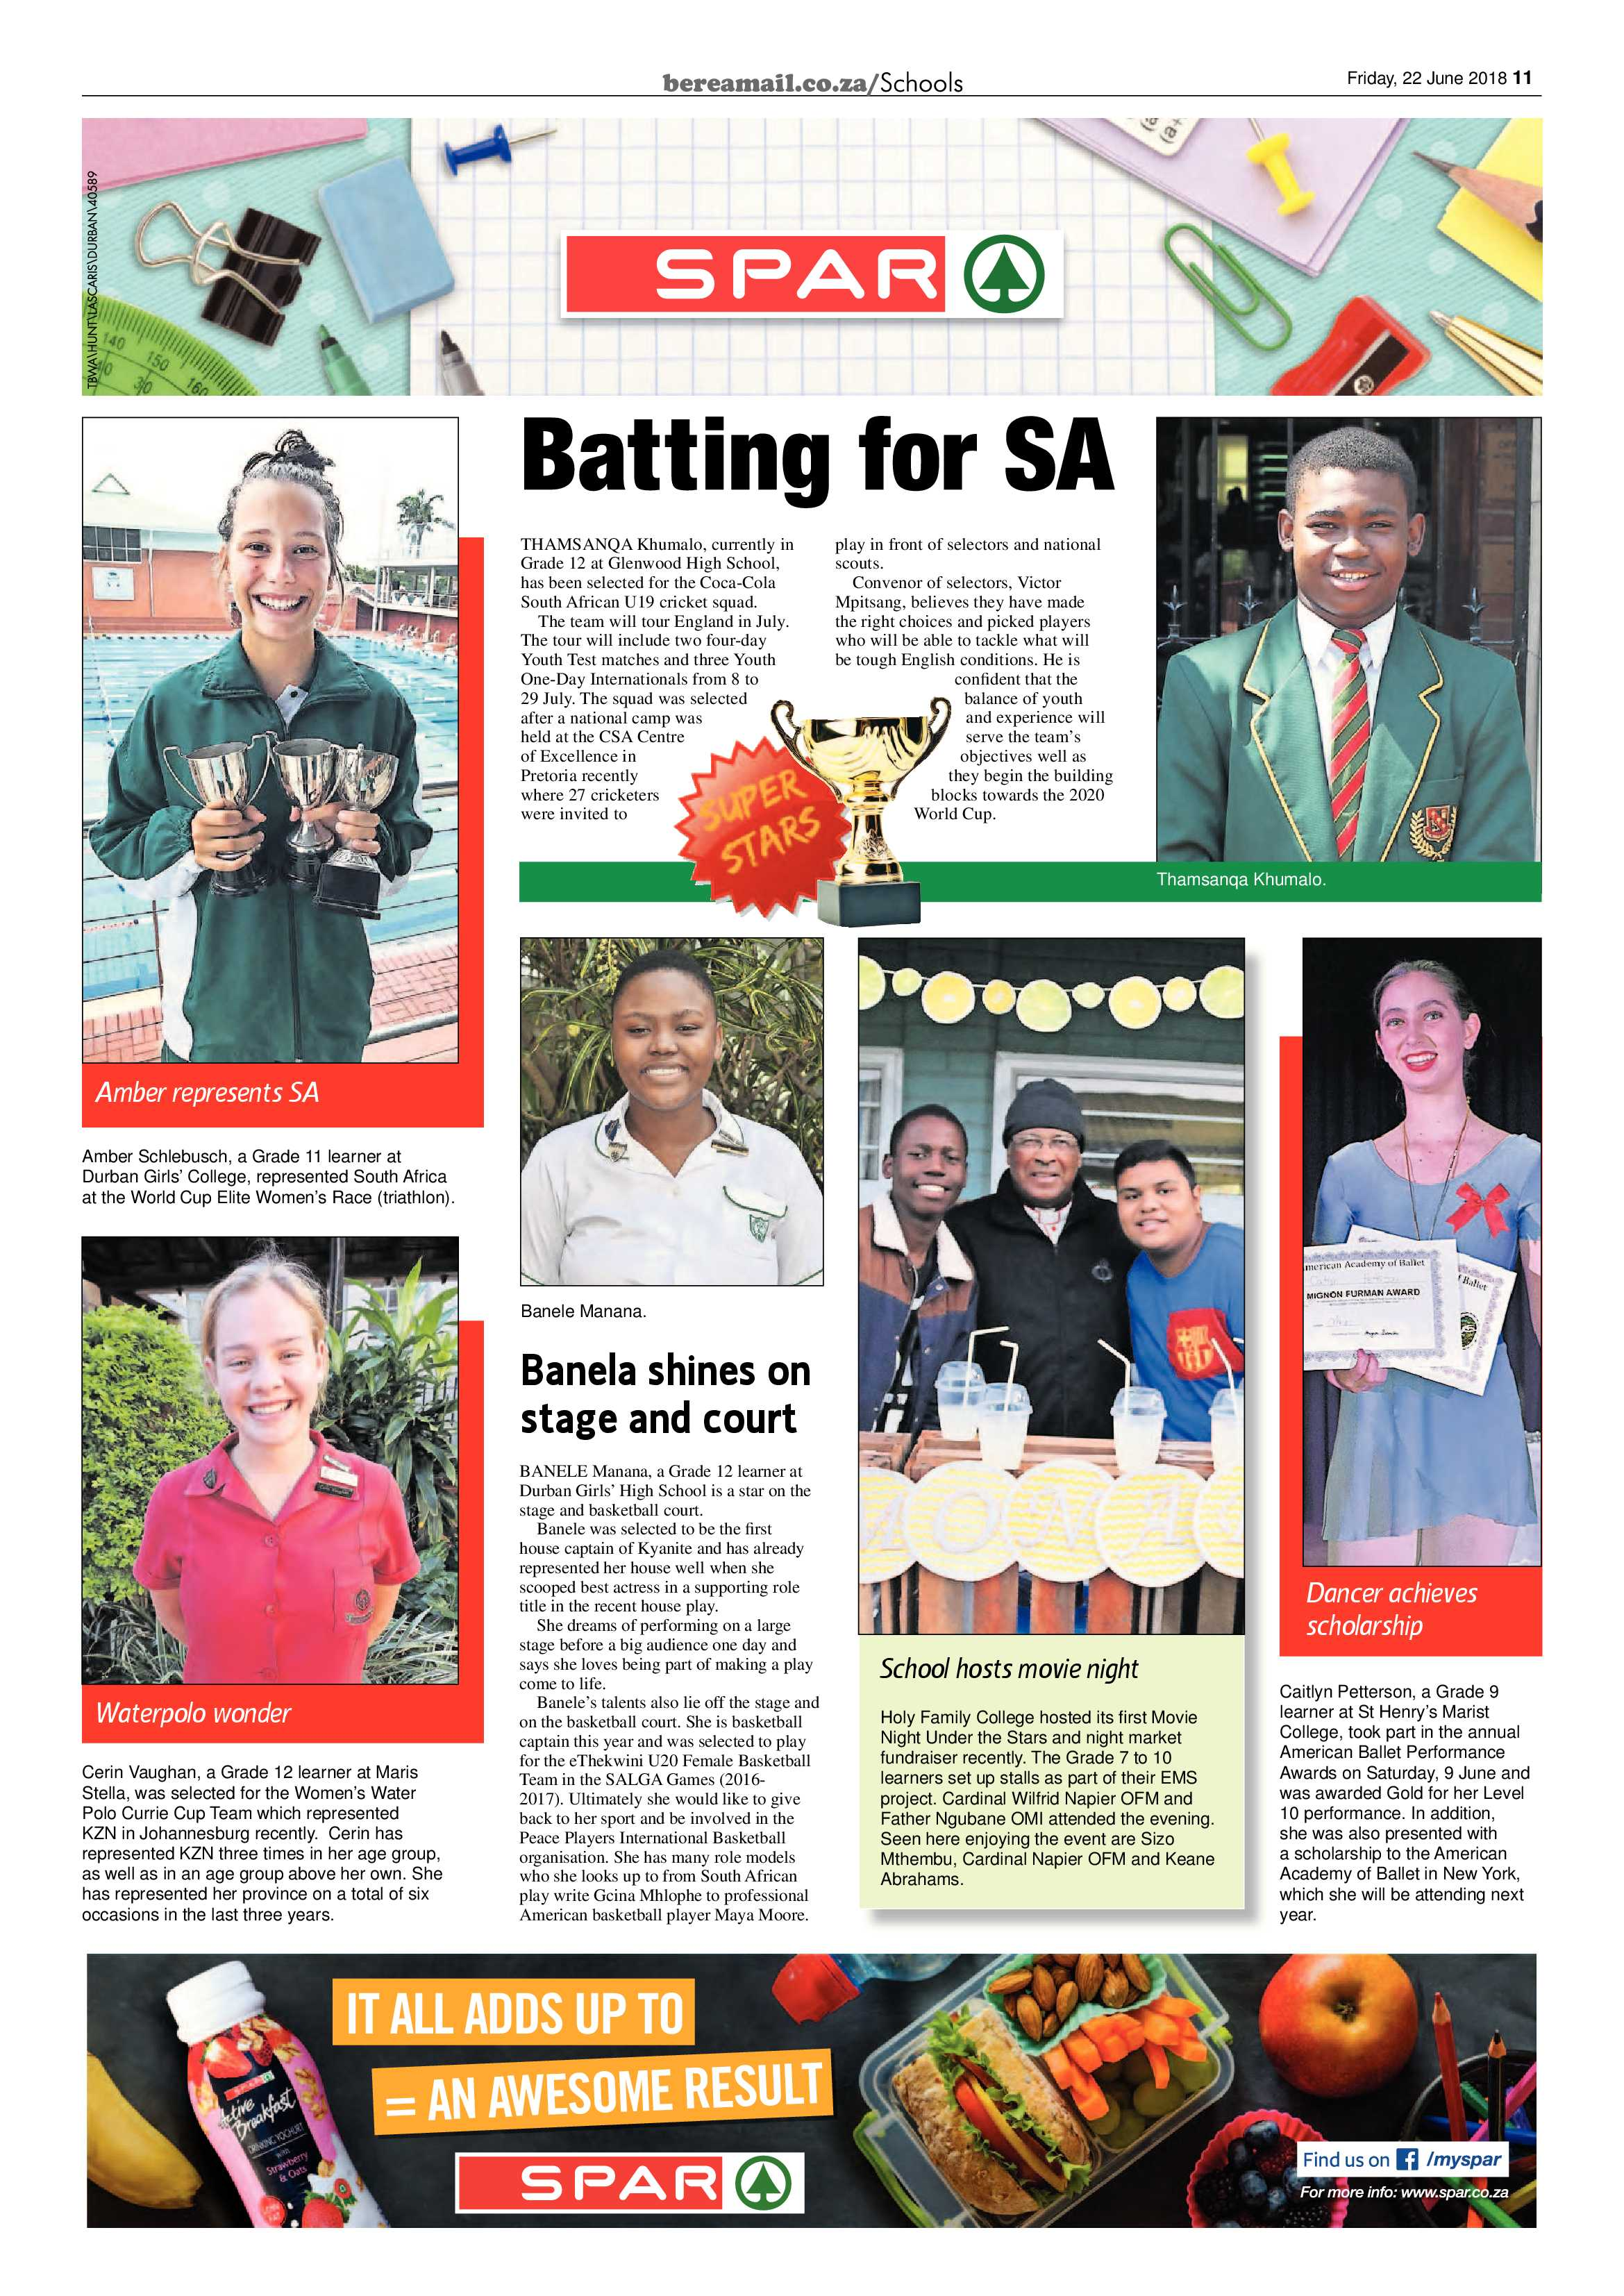 berea-mail-22-june-2018-epapers-page-11